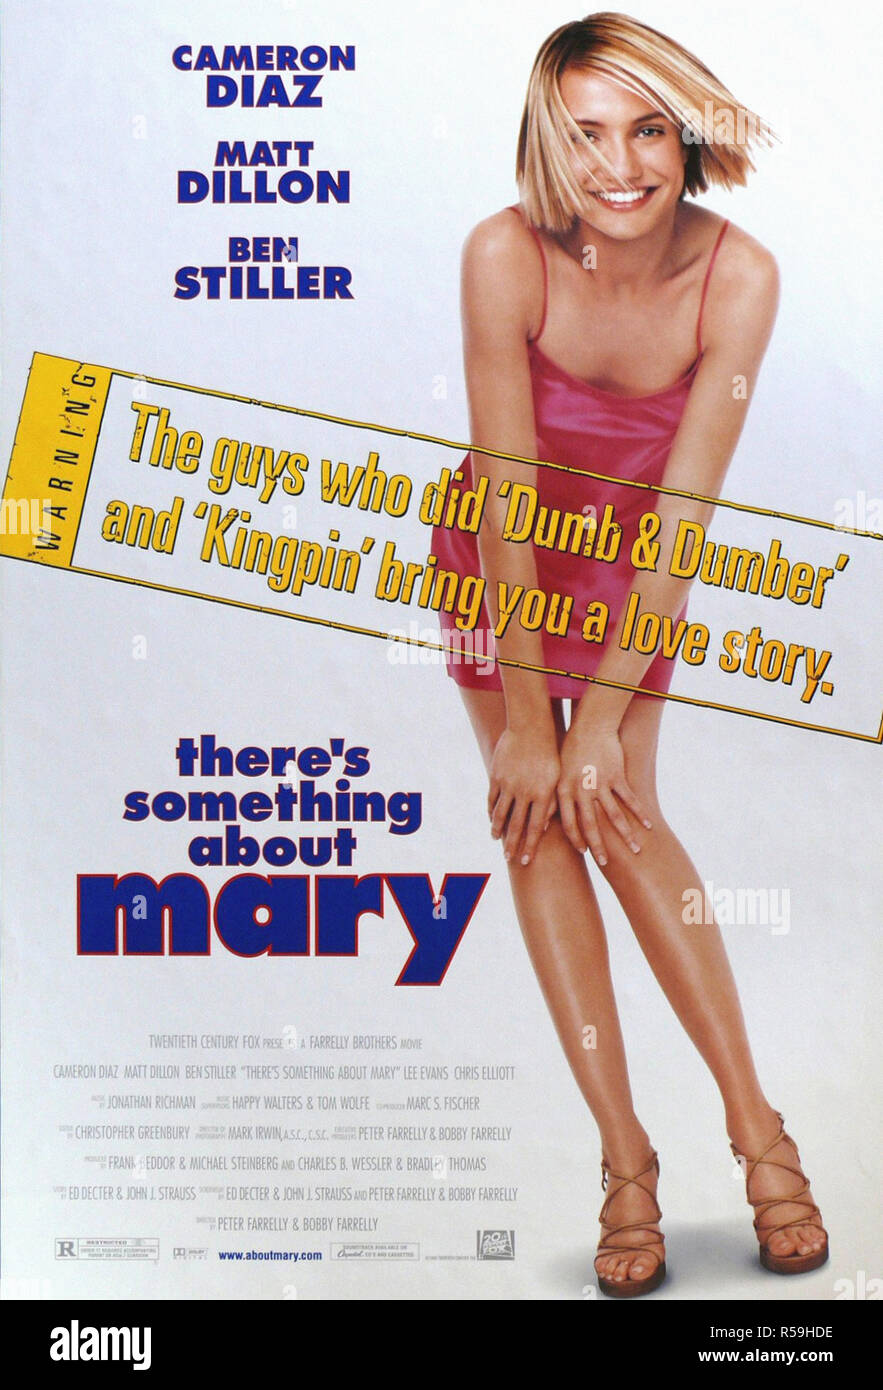 There's Something about Mary - Original Movie Poster - Stock Image